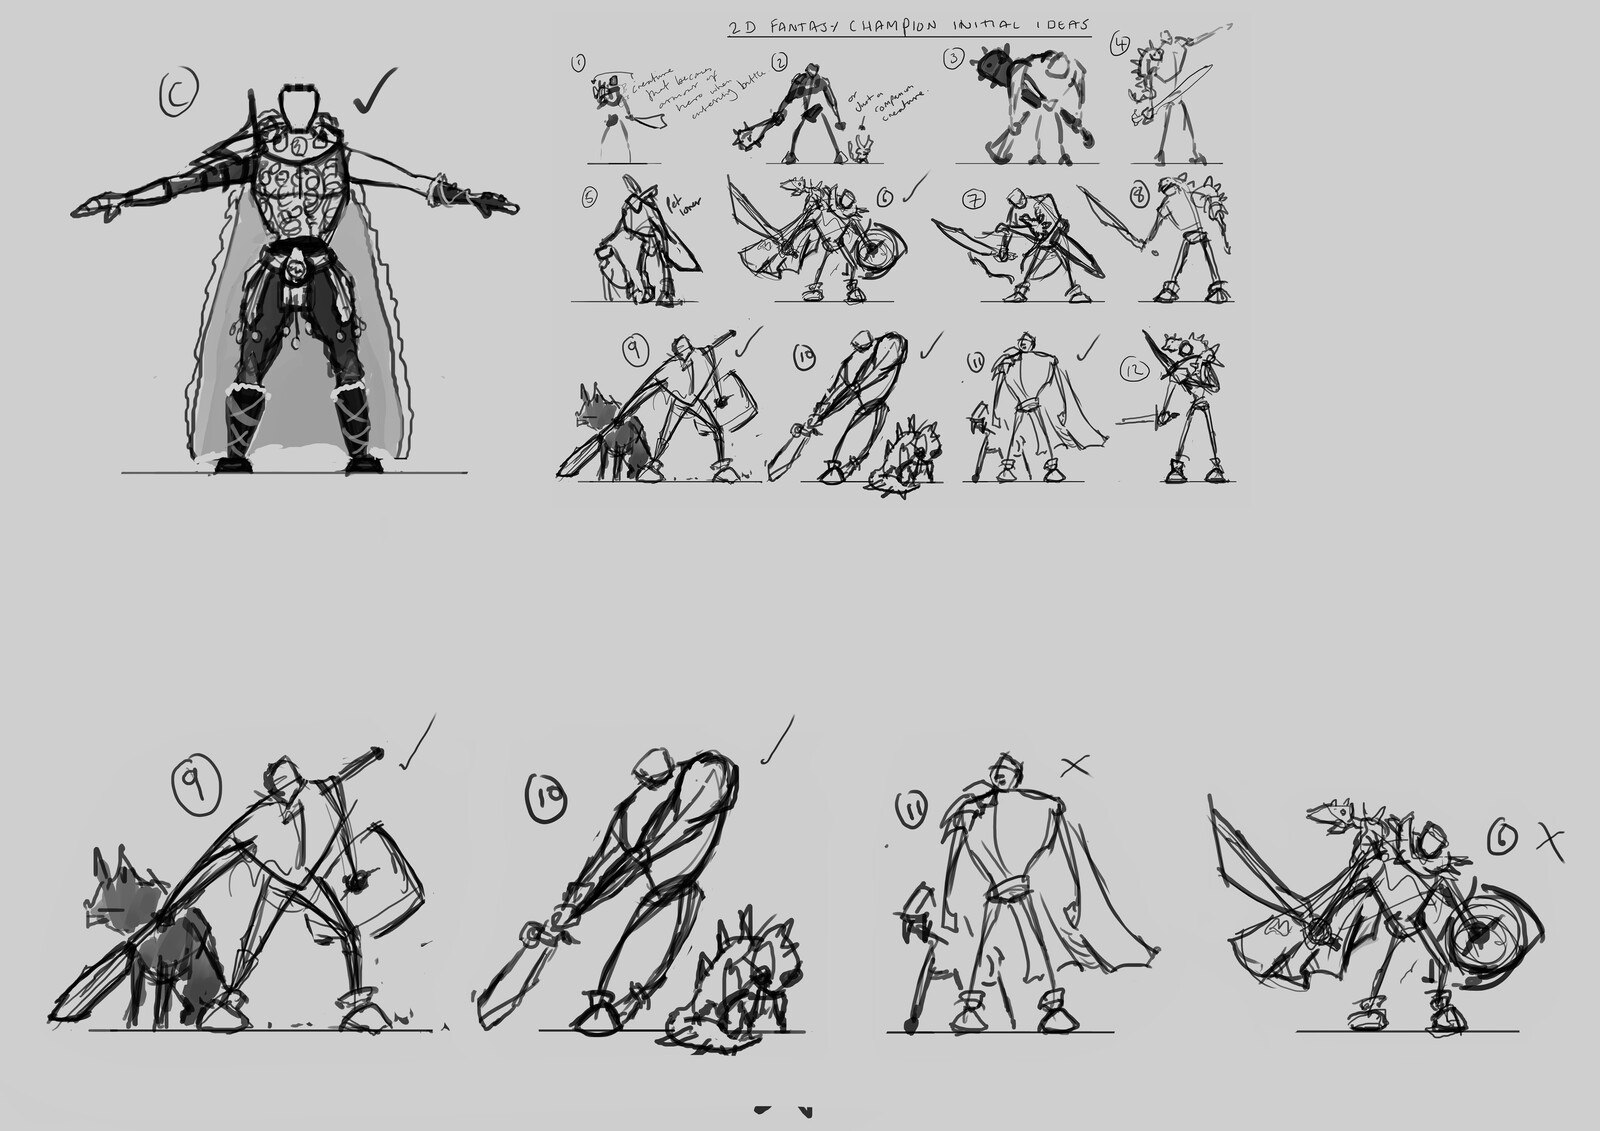 Chosen character concept thumbnail and final character pose thumbnails for character sheet.